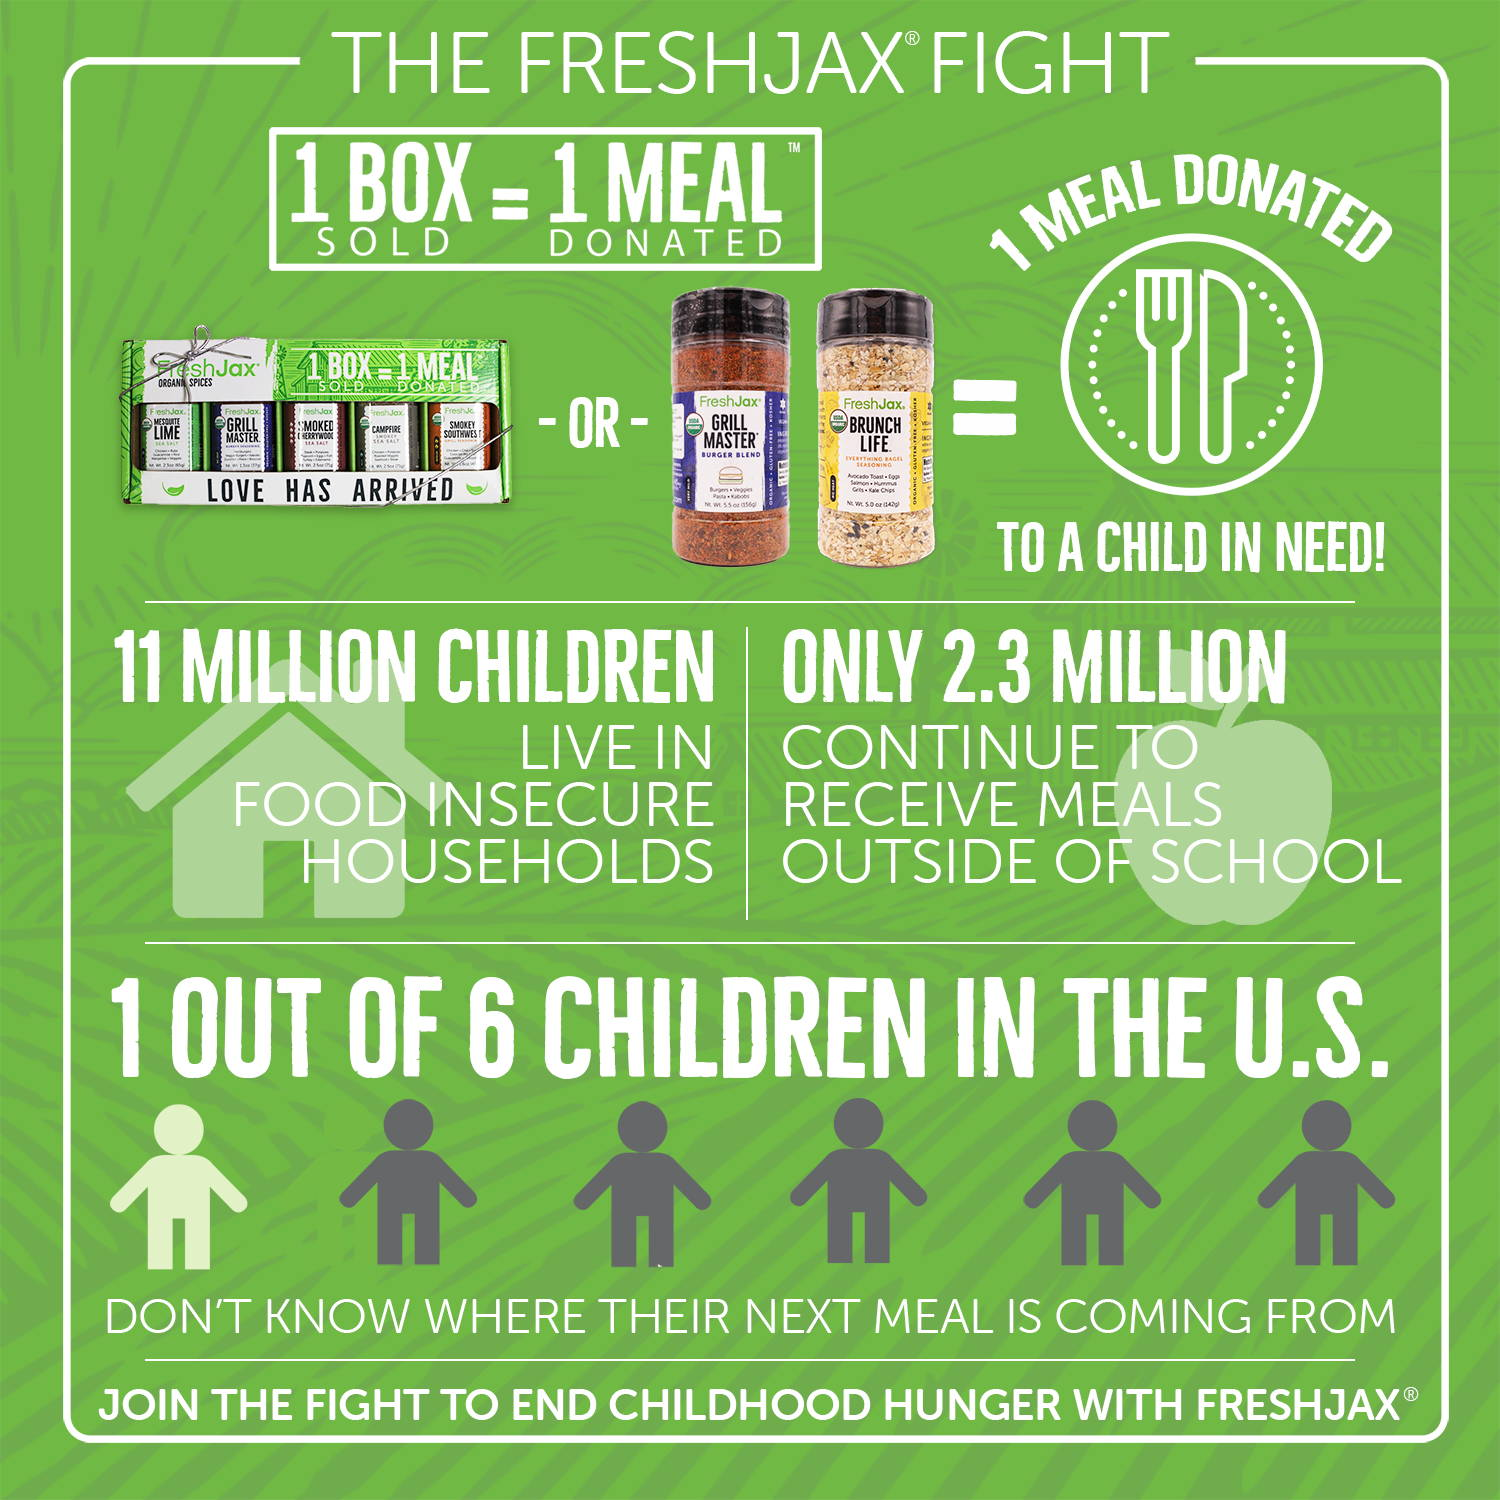 The FreshJax Fight infographic. 1 FreshJax 5 Pack gift set or 2 Large 8oz spice bottles = 1 meal donated to a child in need!